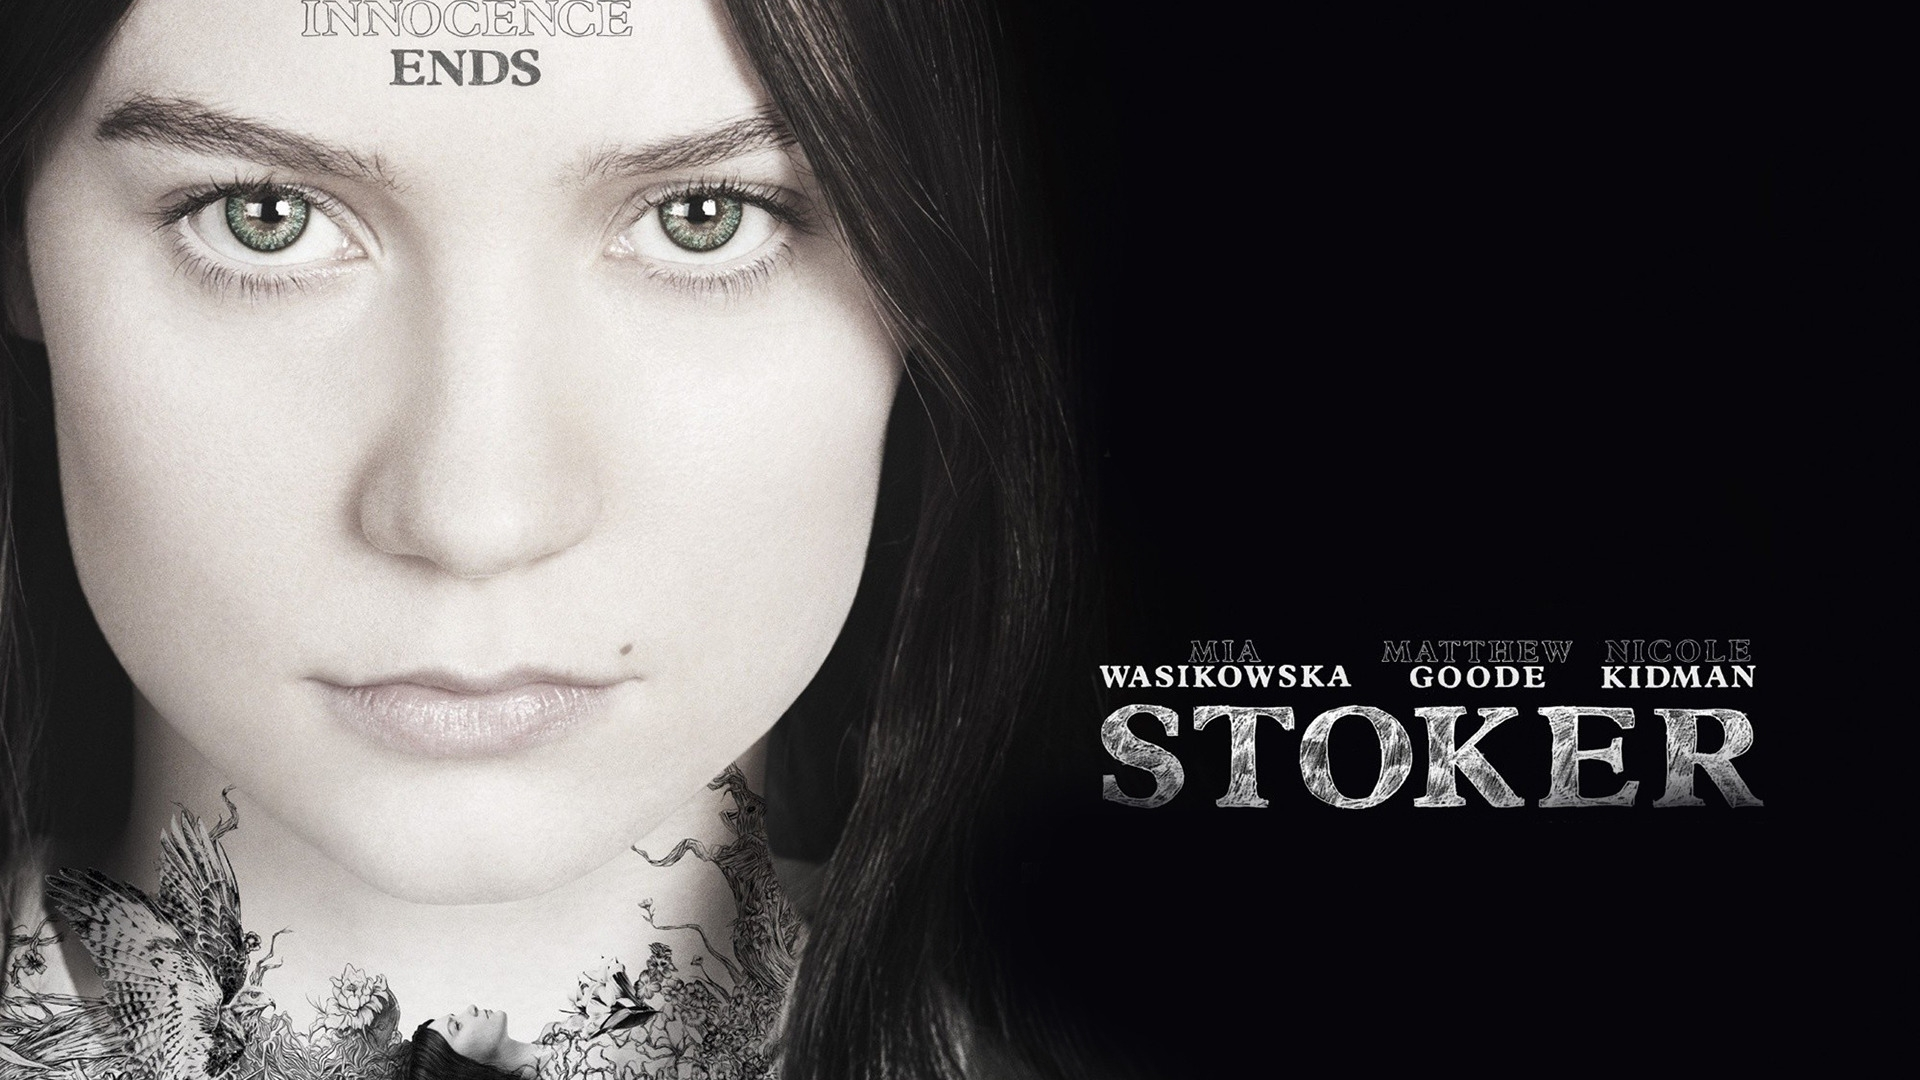 Stoker for 1920 x 1080 HDTV 1080p resolution